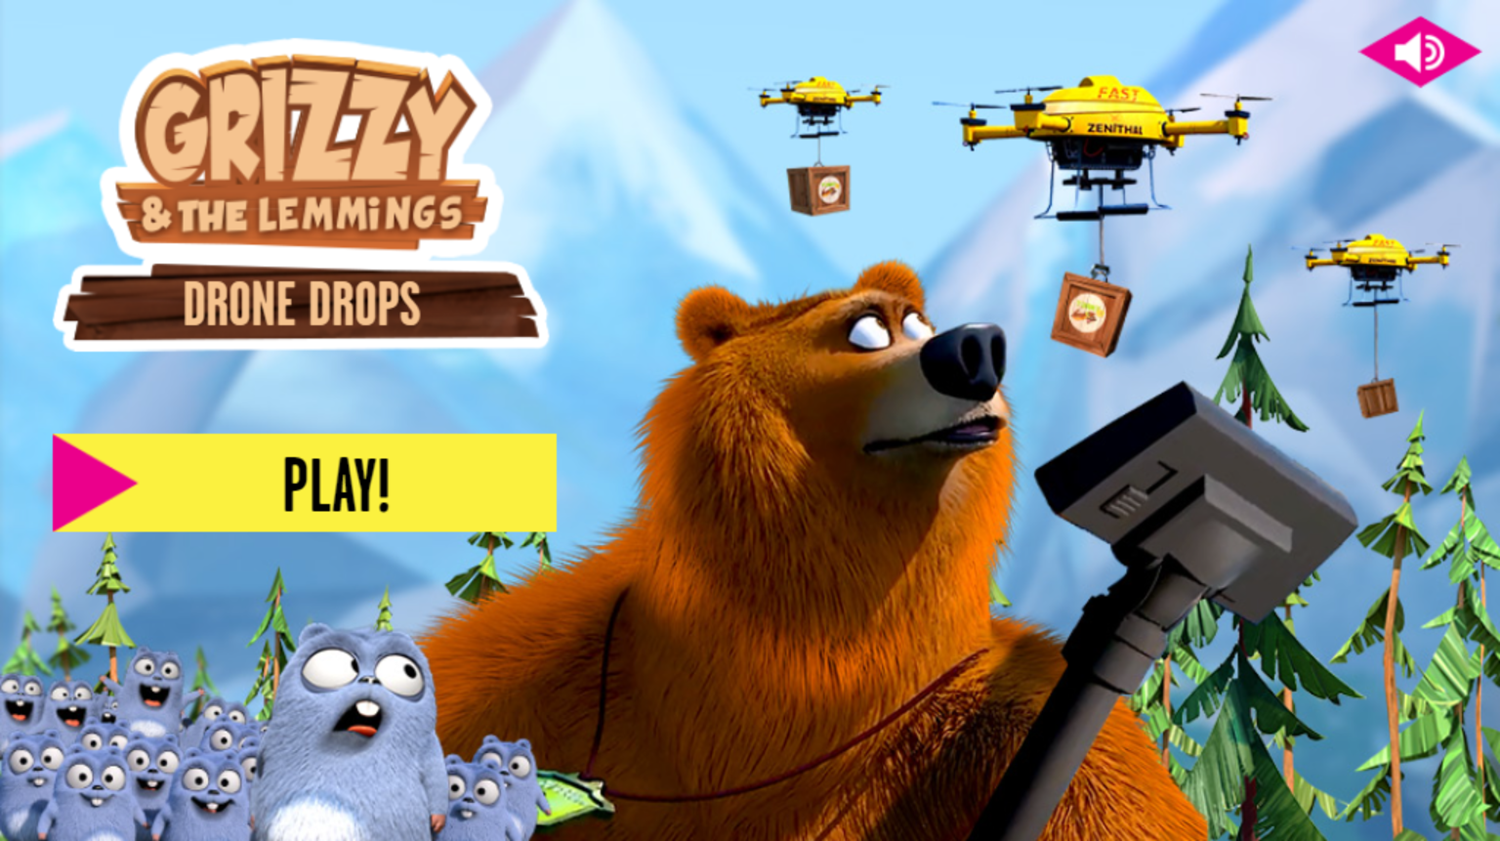 Grizzy and the Lemmings Drone Drops Game Welcome Screen Screenshot.